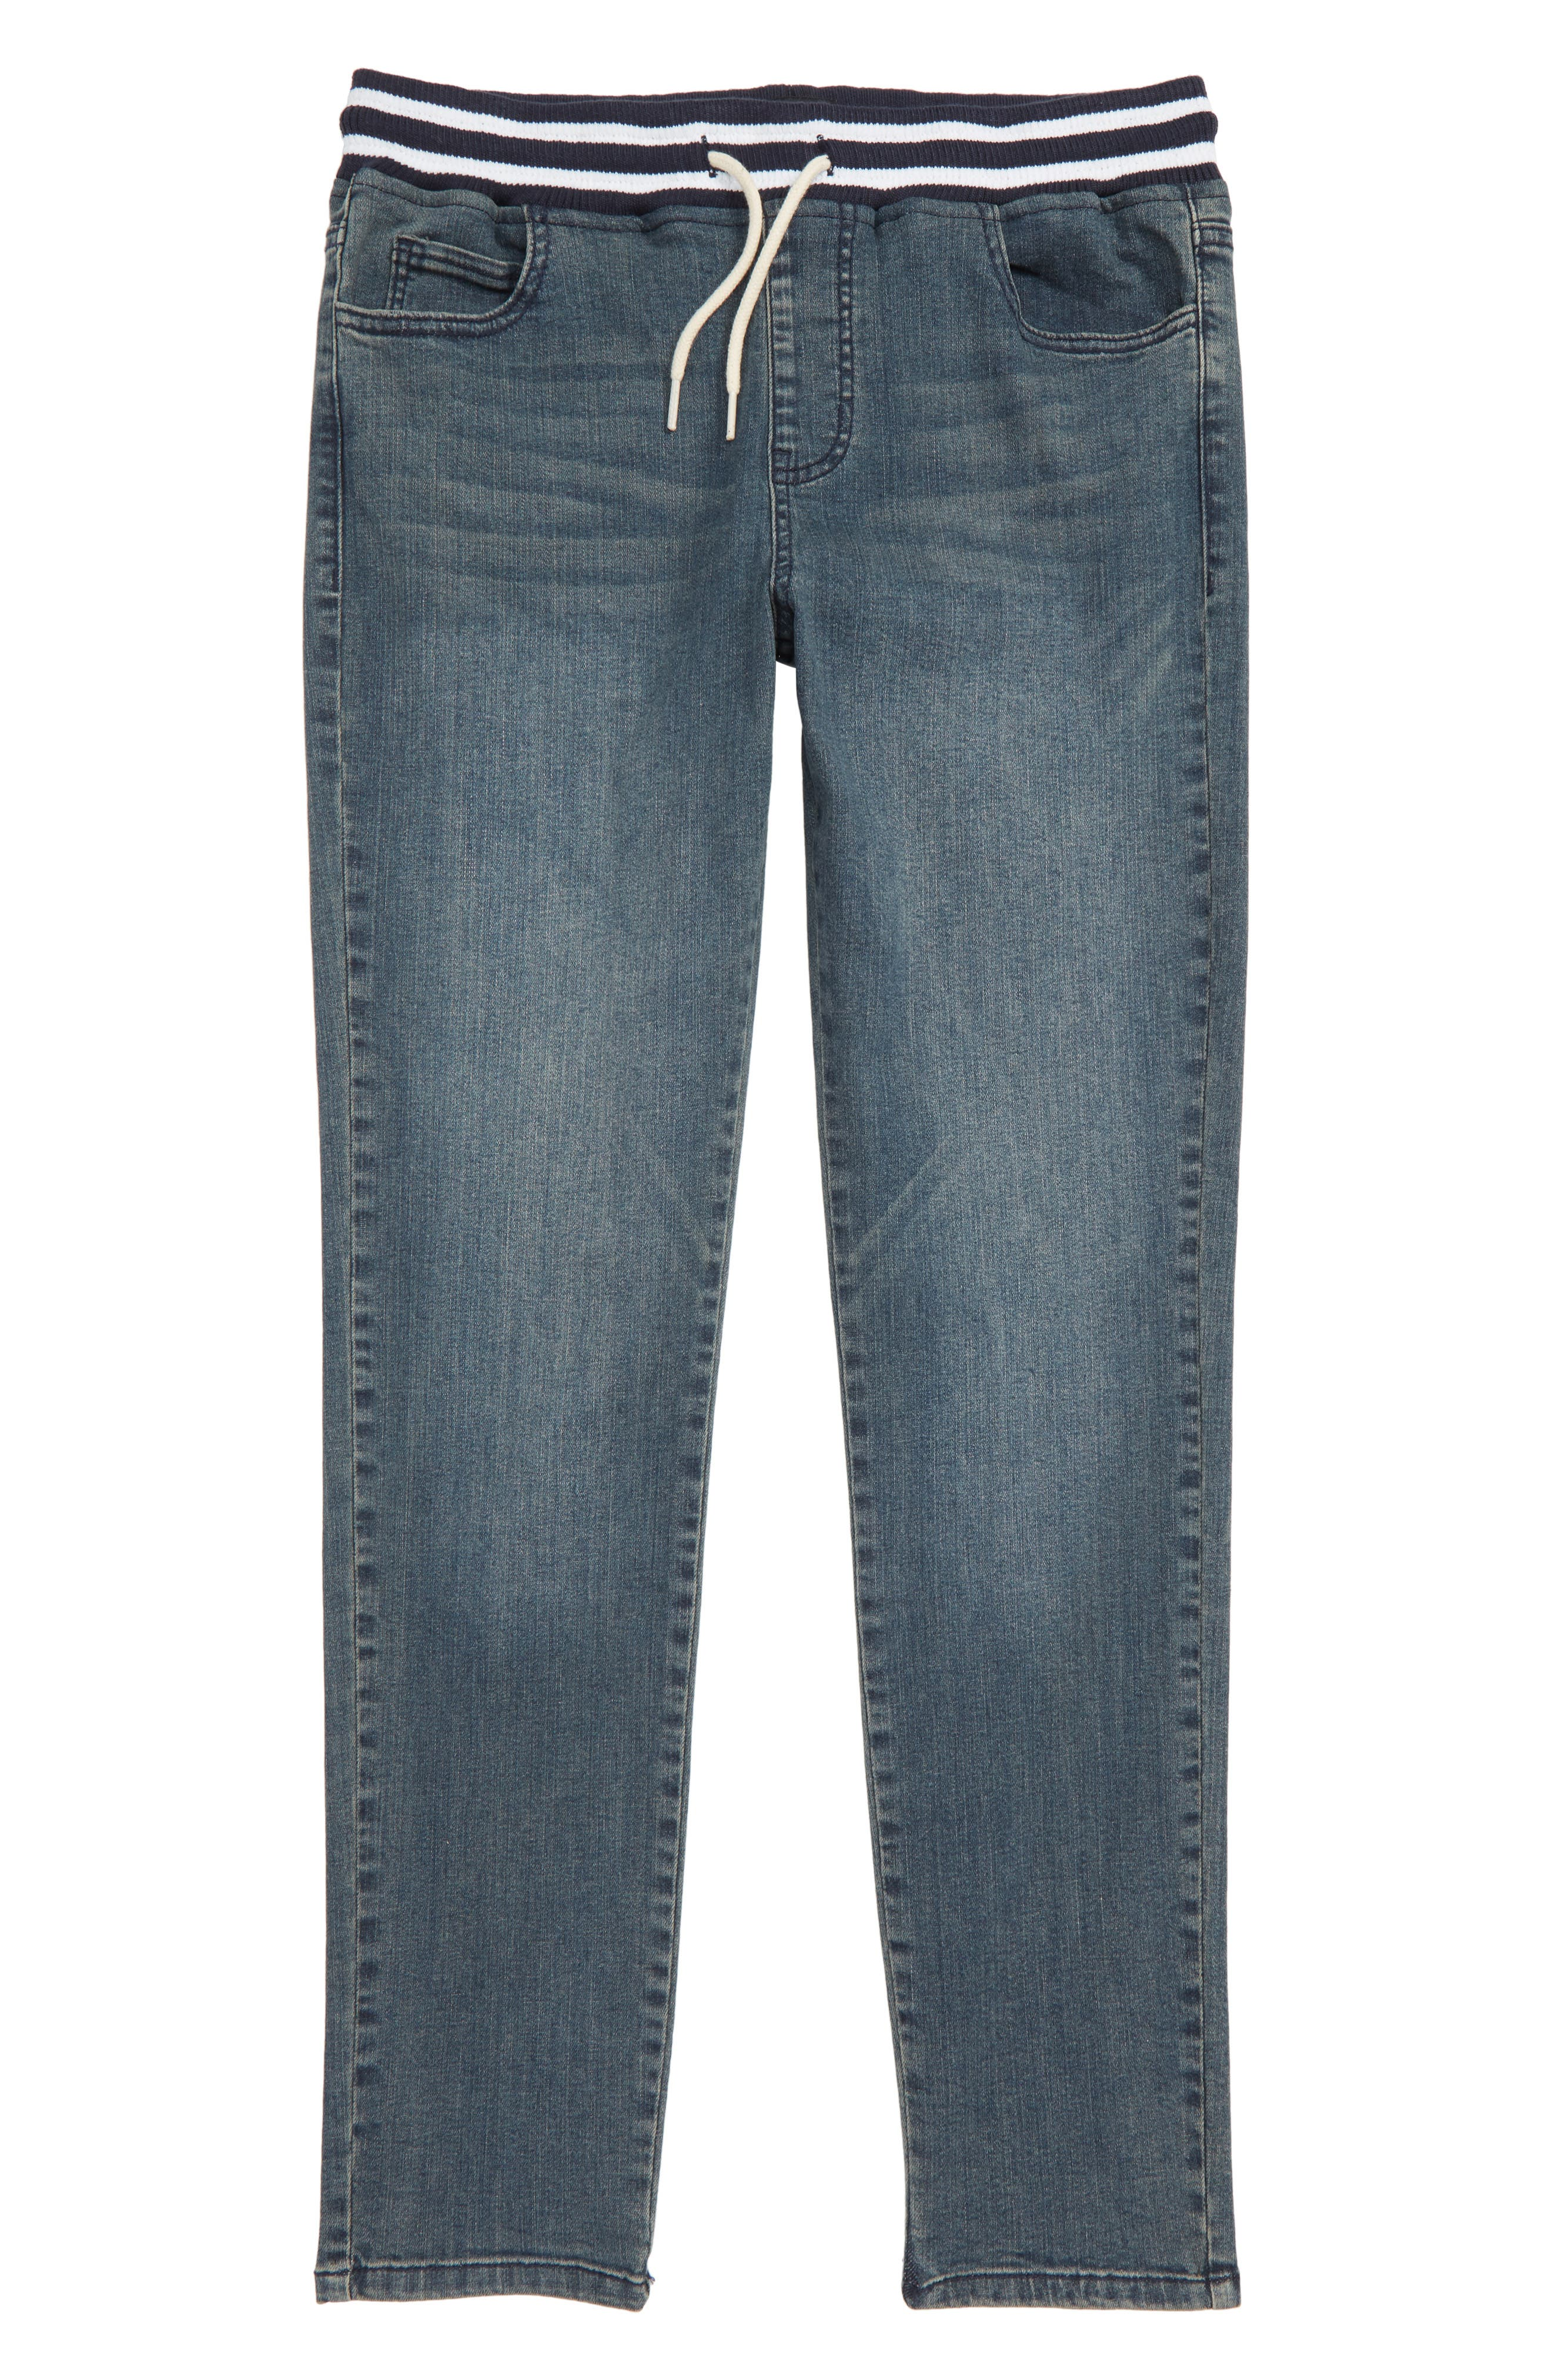 ELWOOD, Denim Jogger Pants, Main thumbnail 1, color, 423